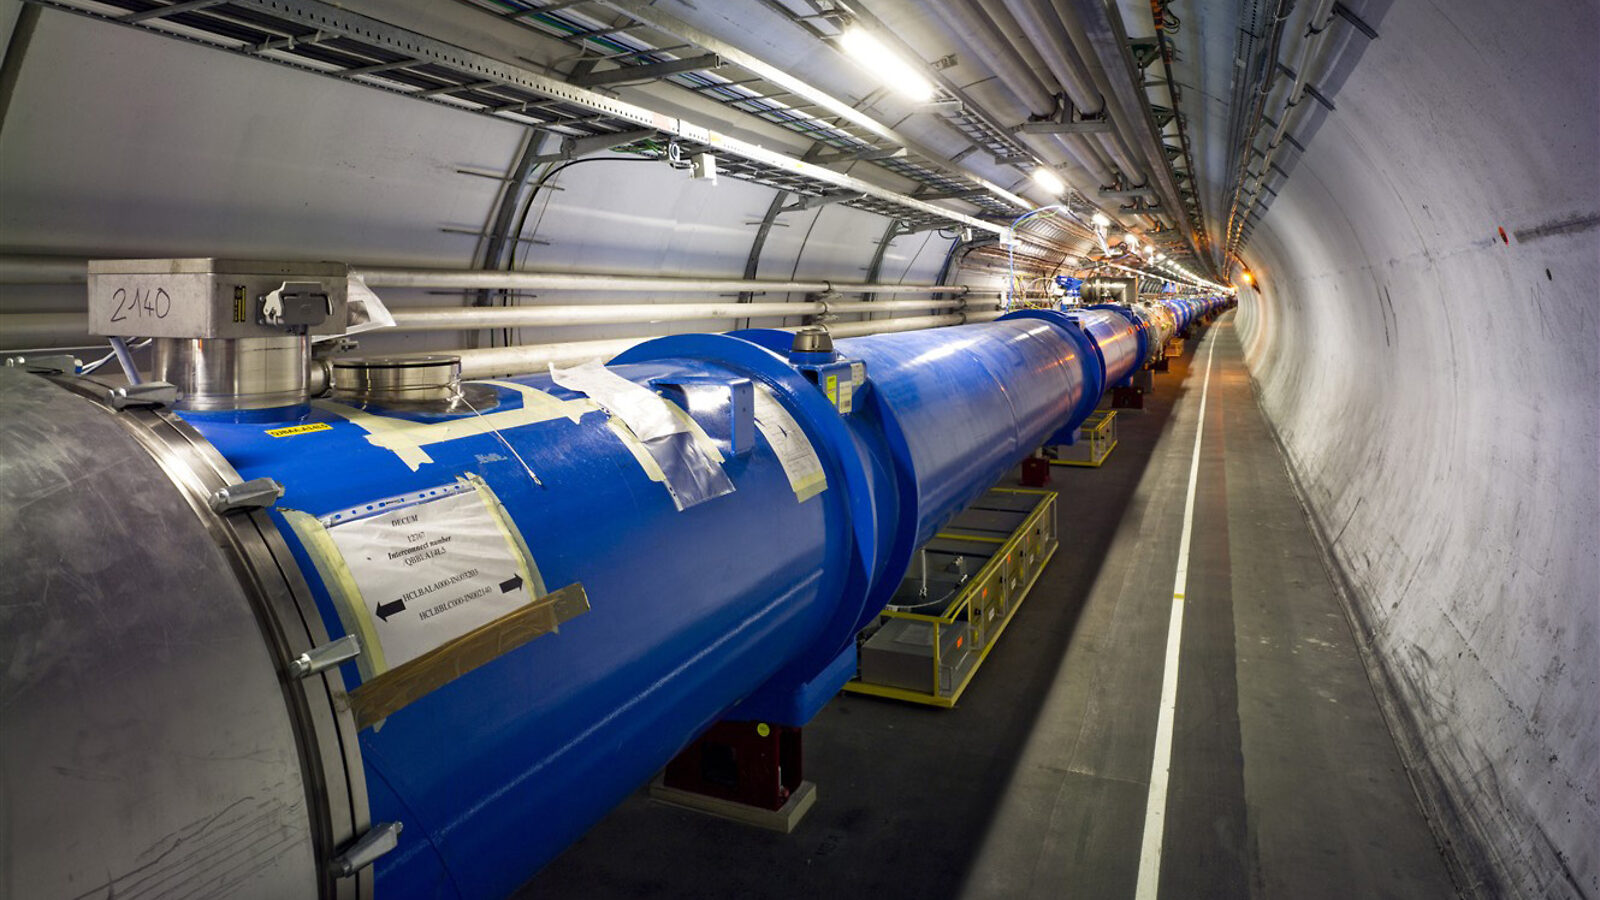 Photo: LHC tunnel